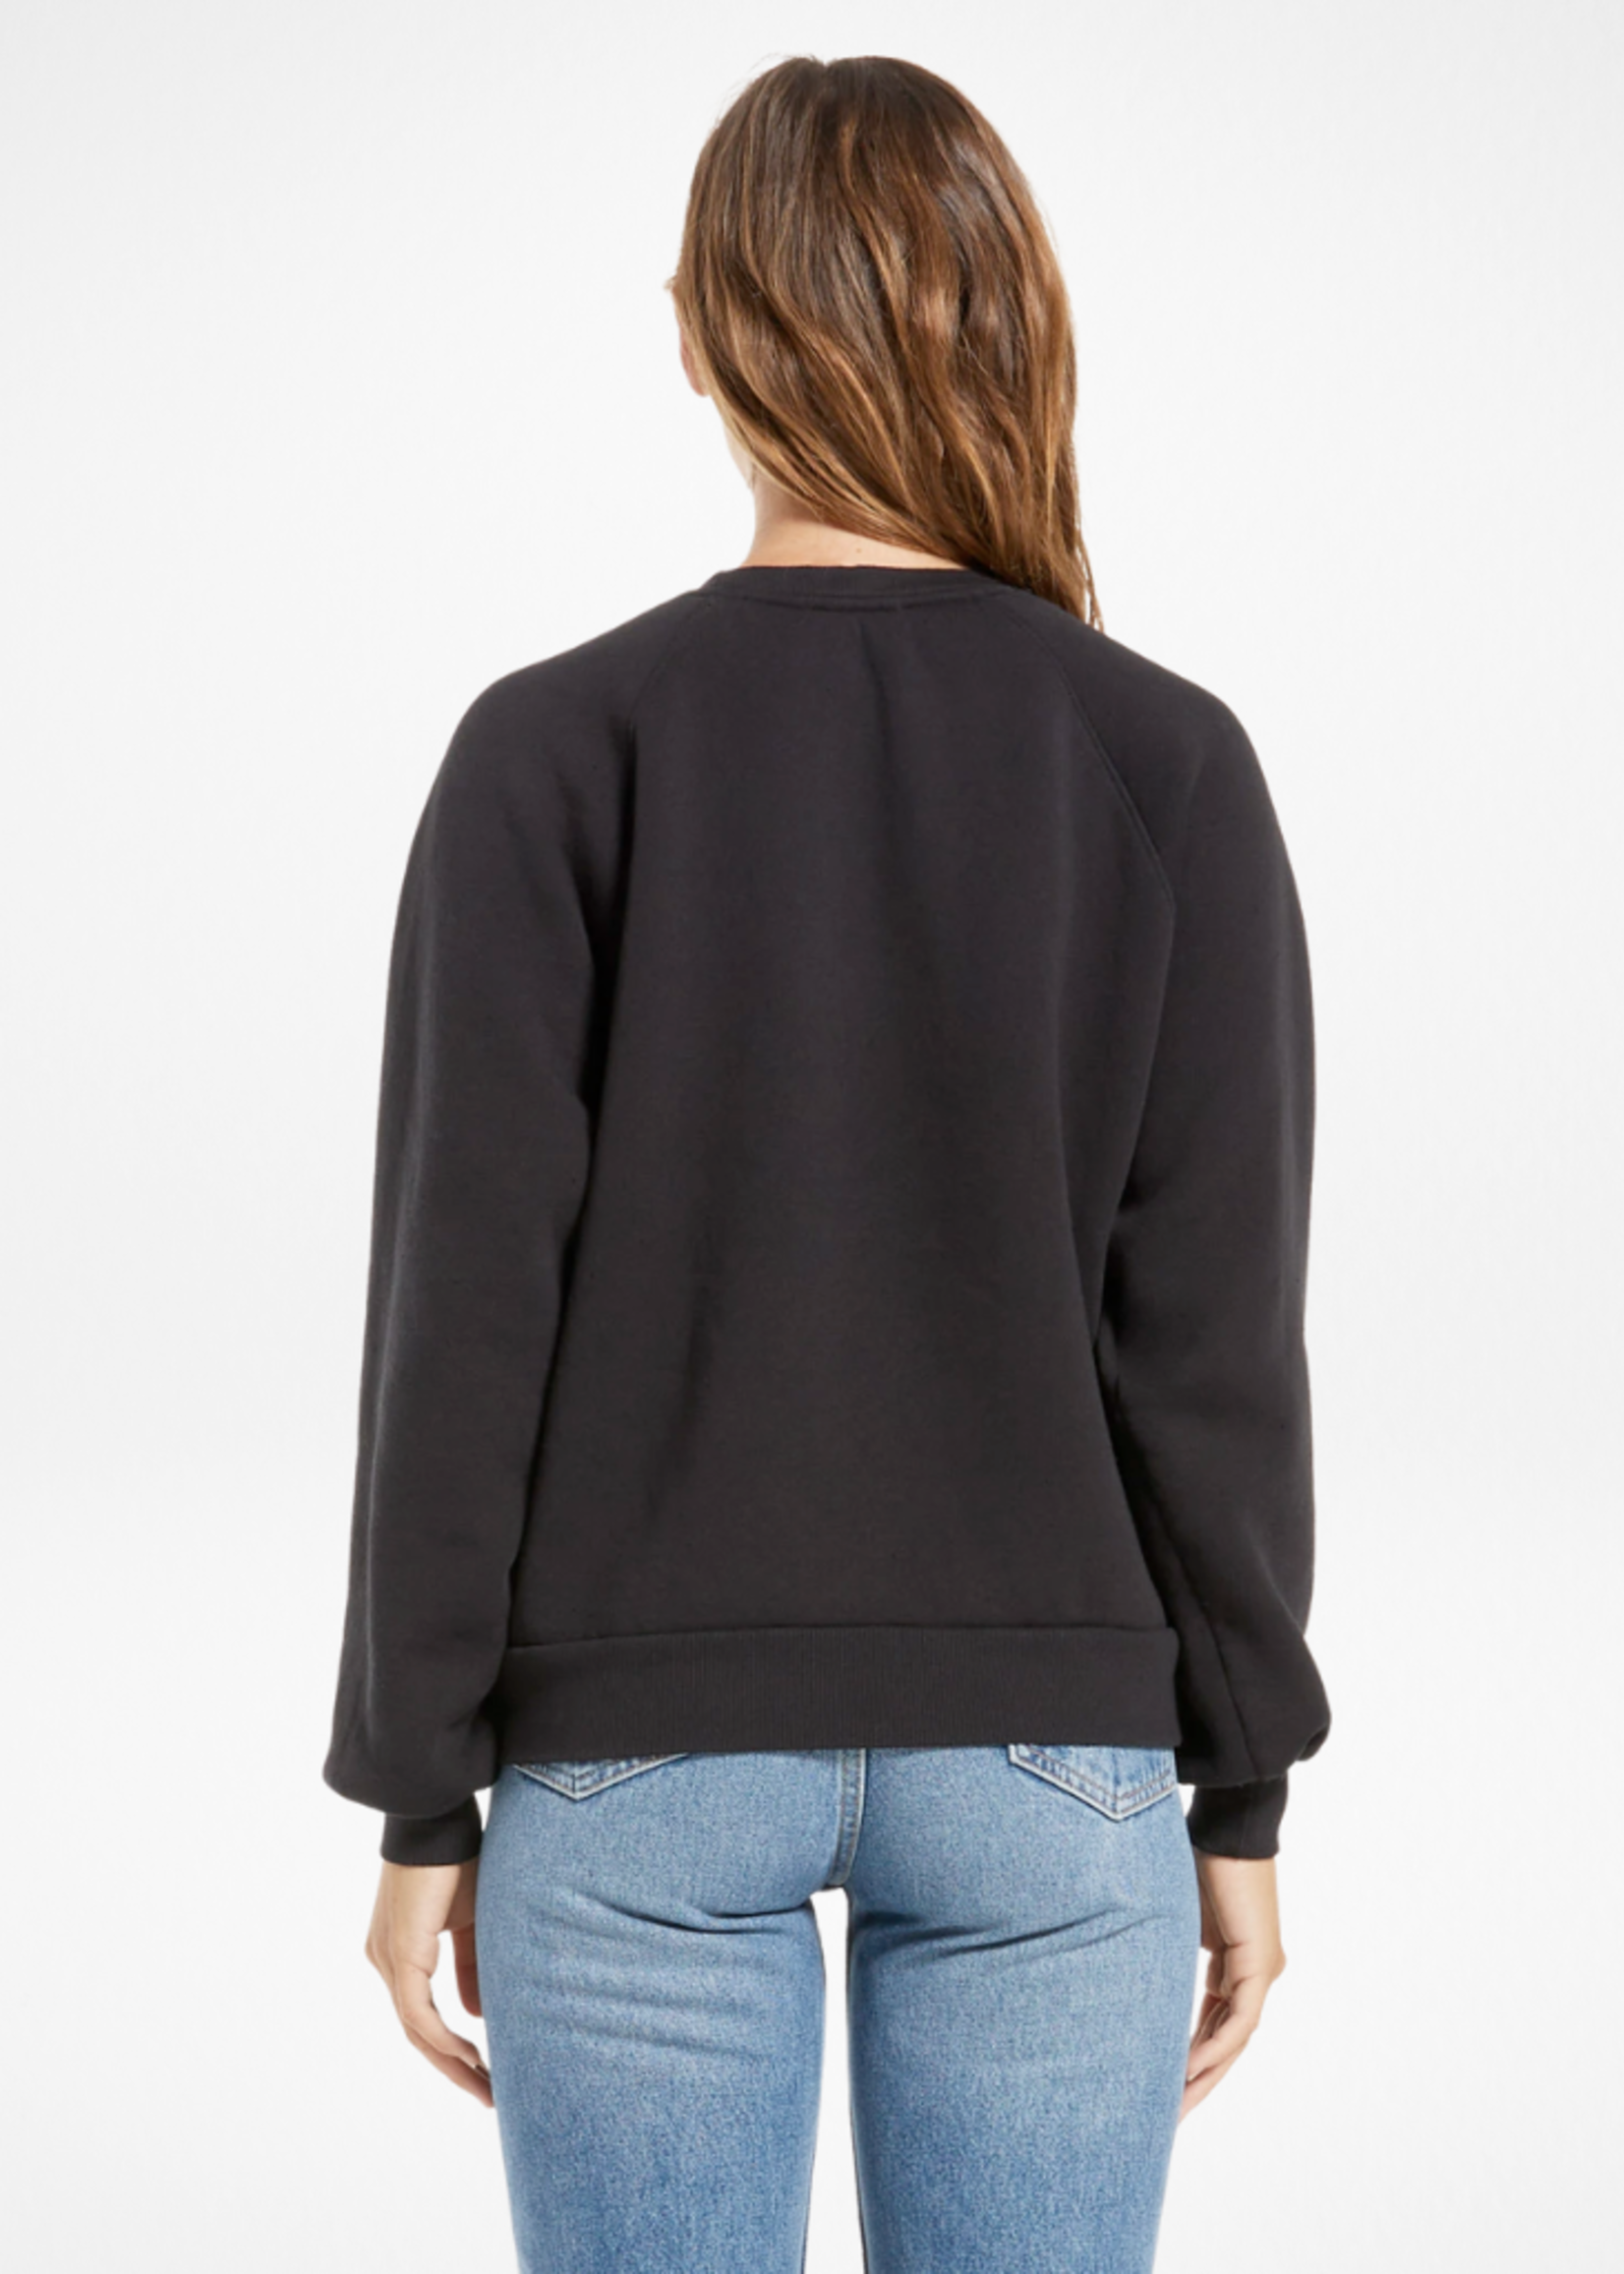 F21 Z SUPPLY BILLIE CLASSIC SWEATERSHIRT